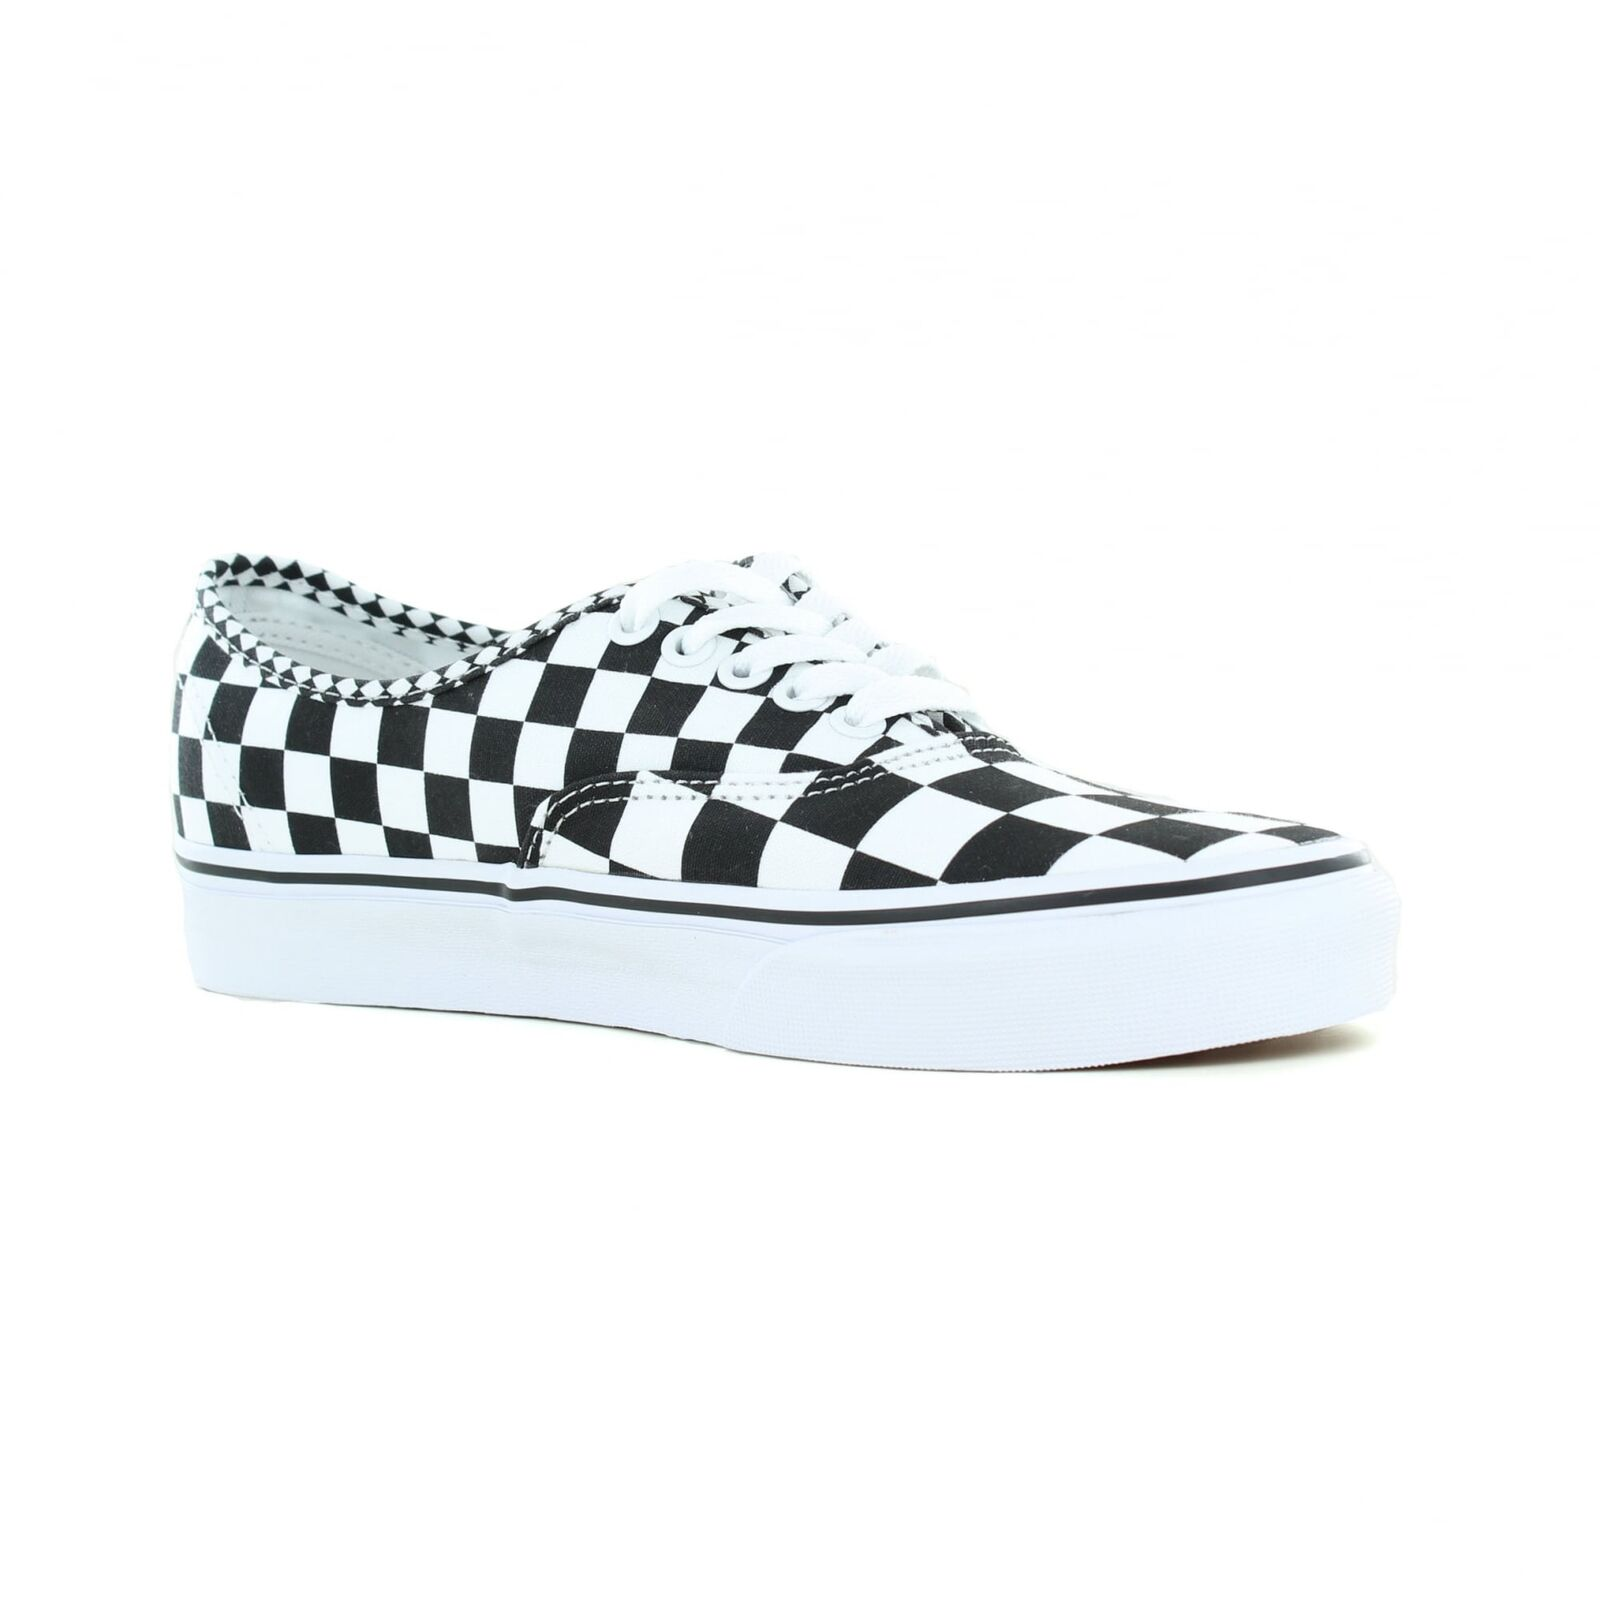 Vans VN0A38EMQ9B Authentic Unisex Canvas Skate Schuhes Checkers - Mix Checkers Schuhes d8dafc